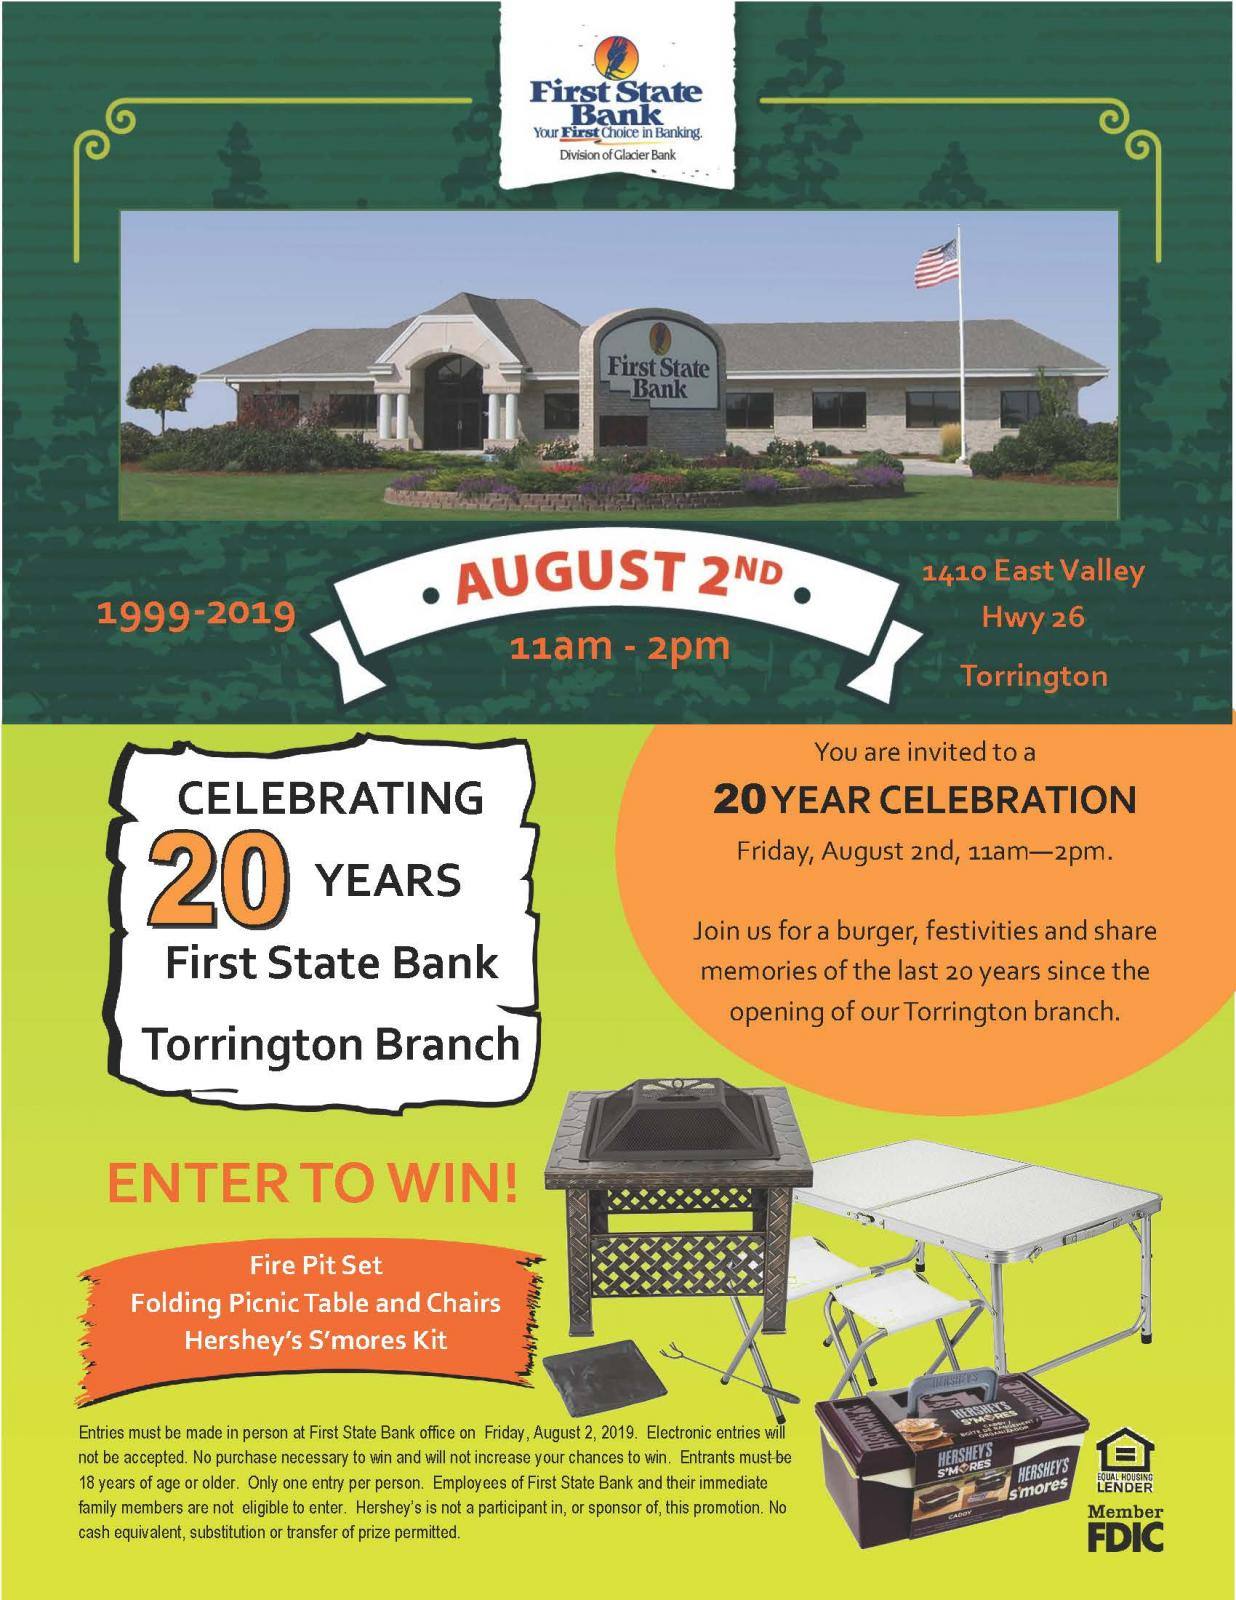 First State Bank 20 Year Celebration Photo